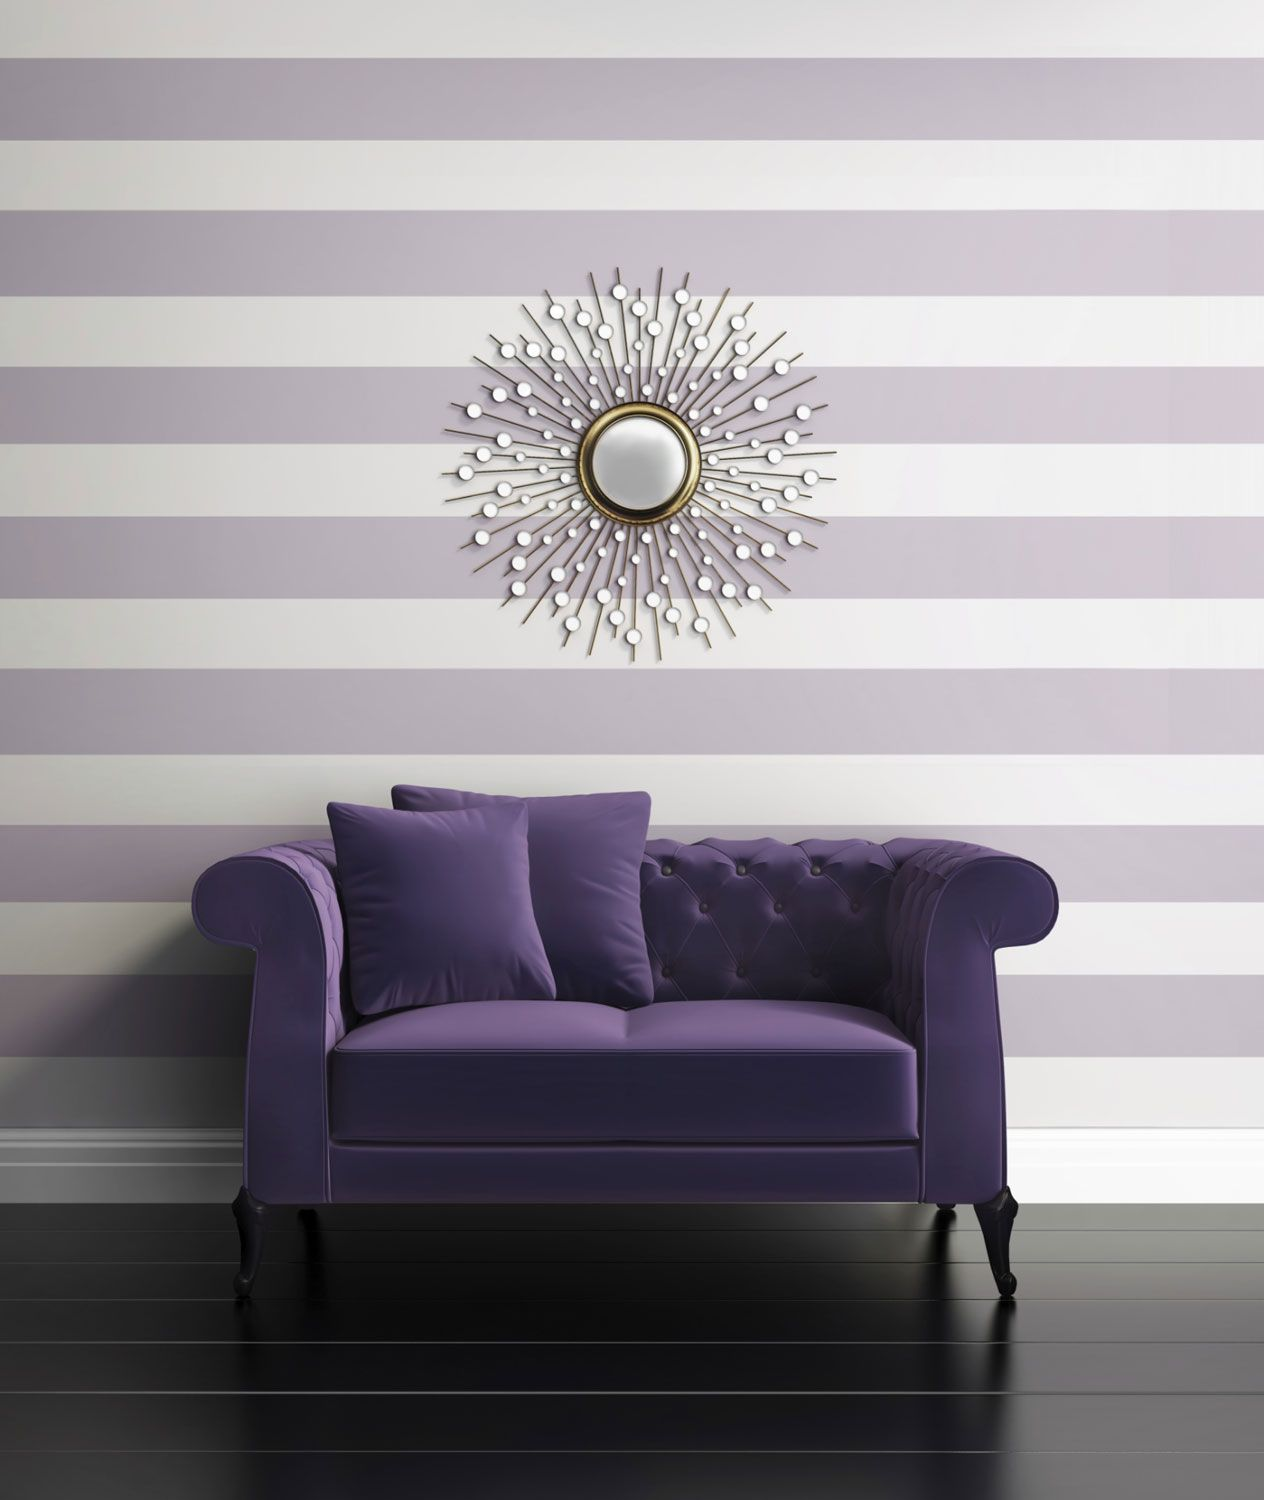 Ideas para combinar un sof morado hogarmania for Papel pintado para salon comedor